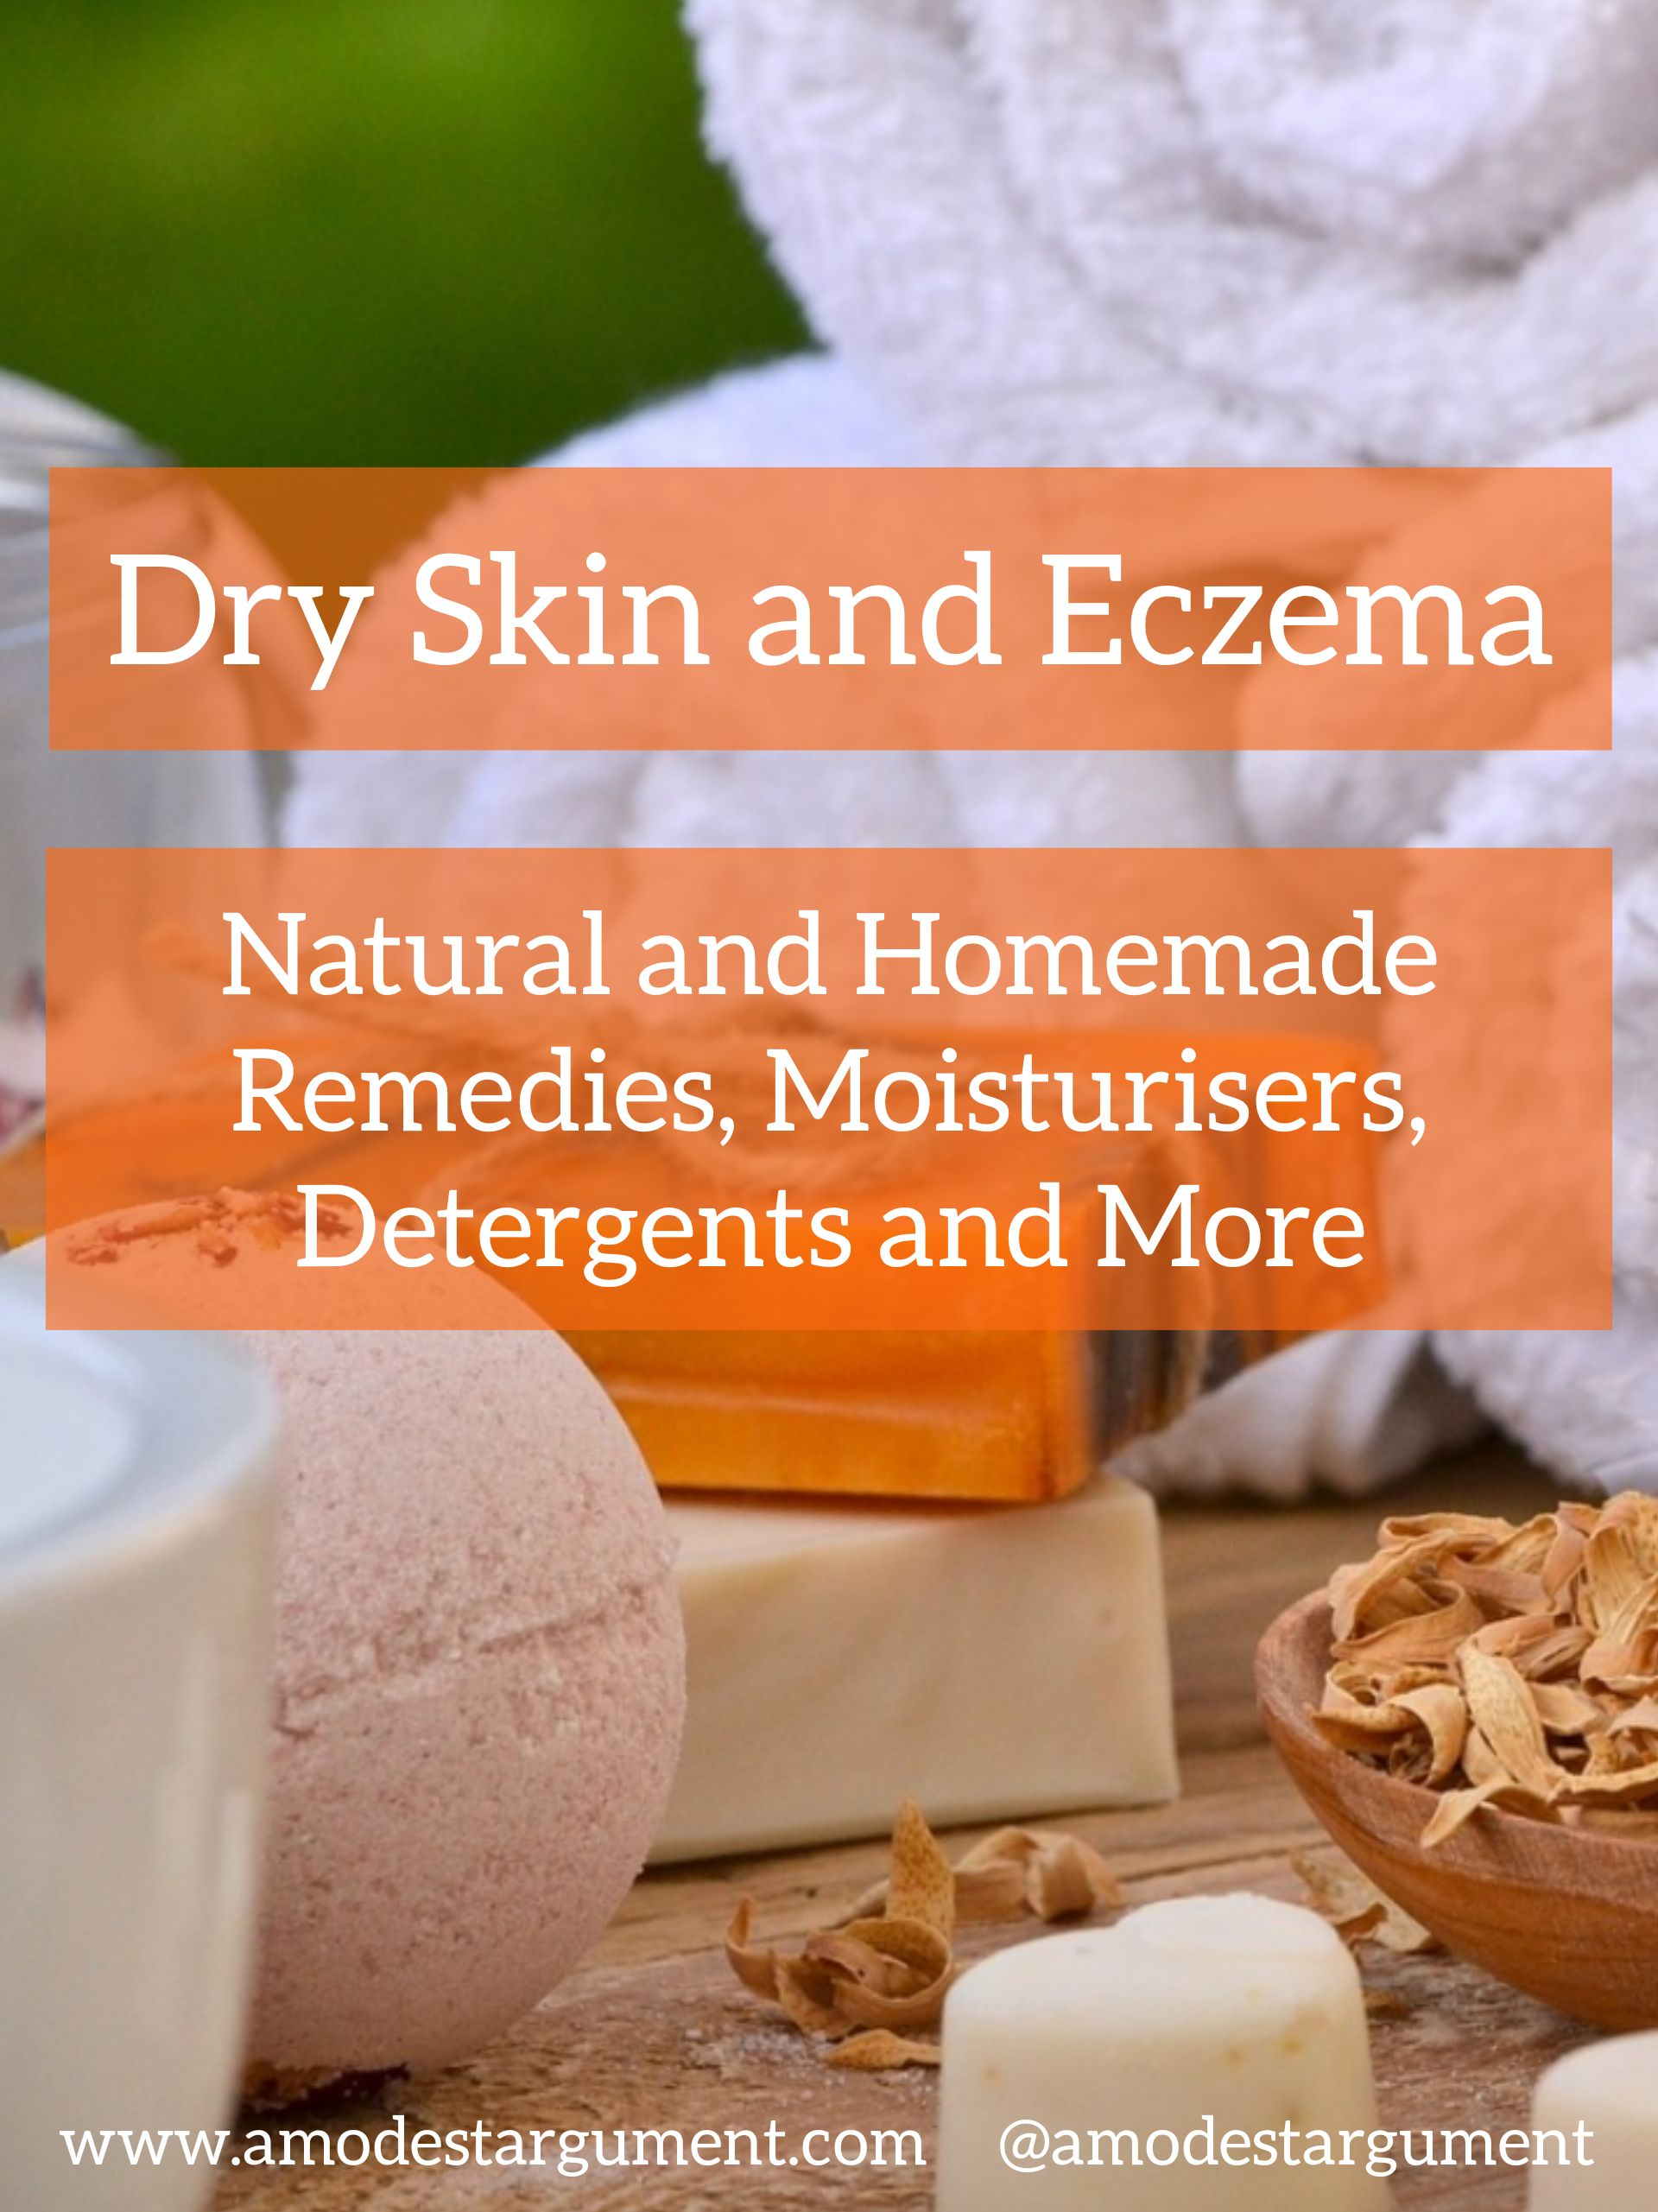 Dry Skin and Eczema Natural and Homemade Remedies Moisturisers and